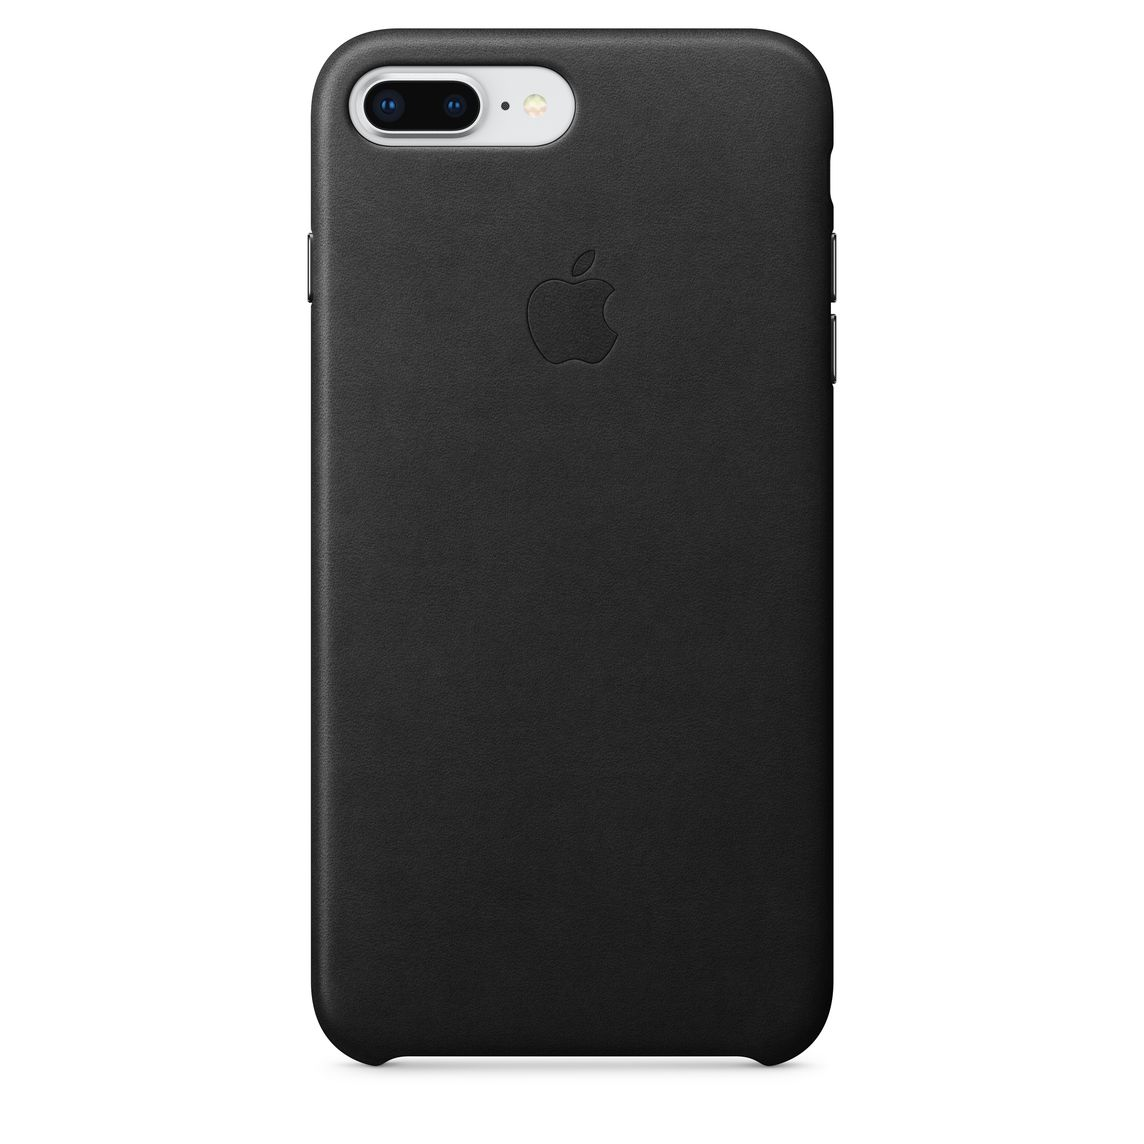 disponibilità nel Regno Unito 593c9 9c370 iPhone 8 Plus / 7 Plus Leather Case - Black